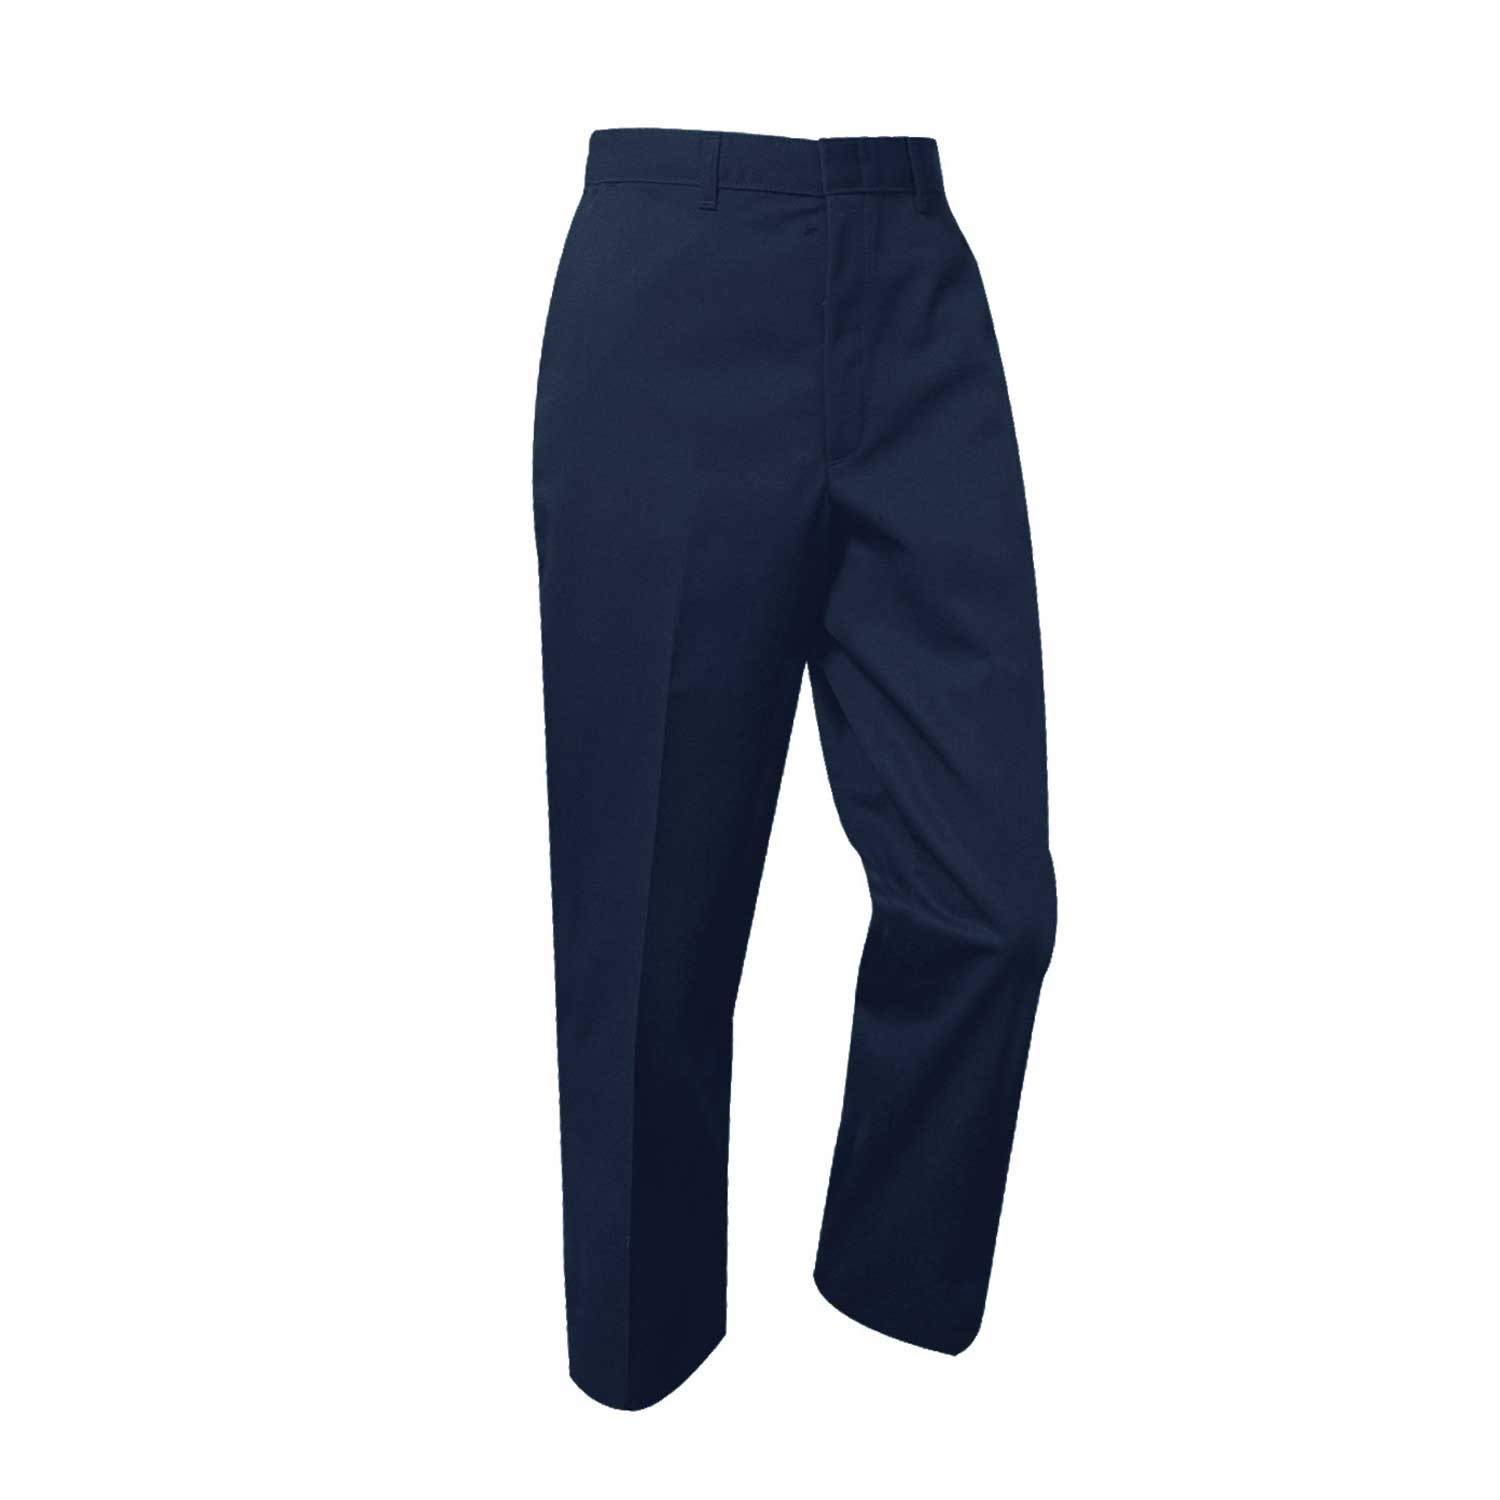 Boys Slim Flat Front w/ Adjustable Waistband Pant (7750S)  Navy